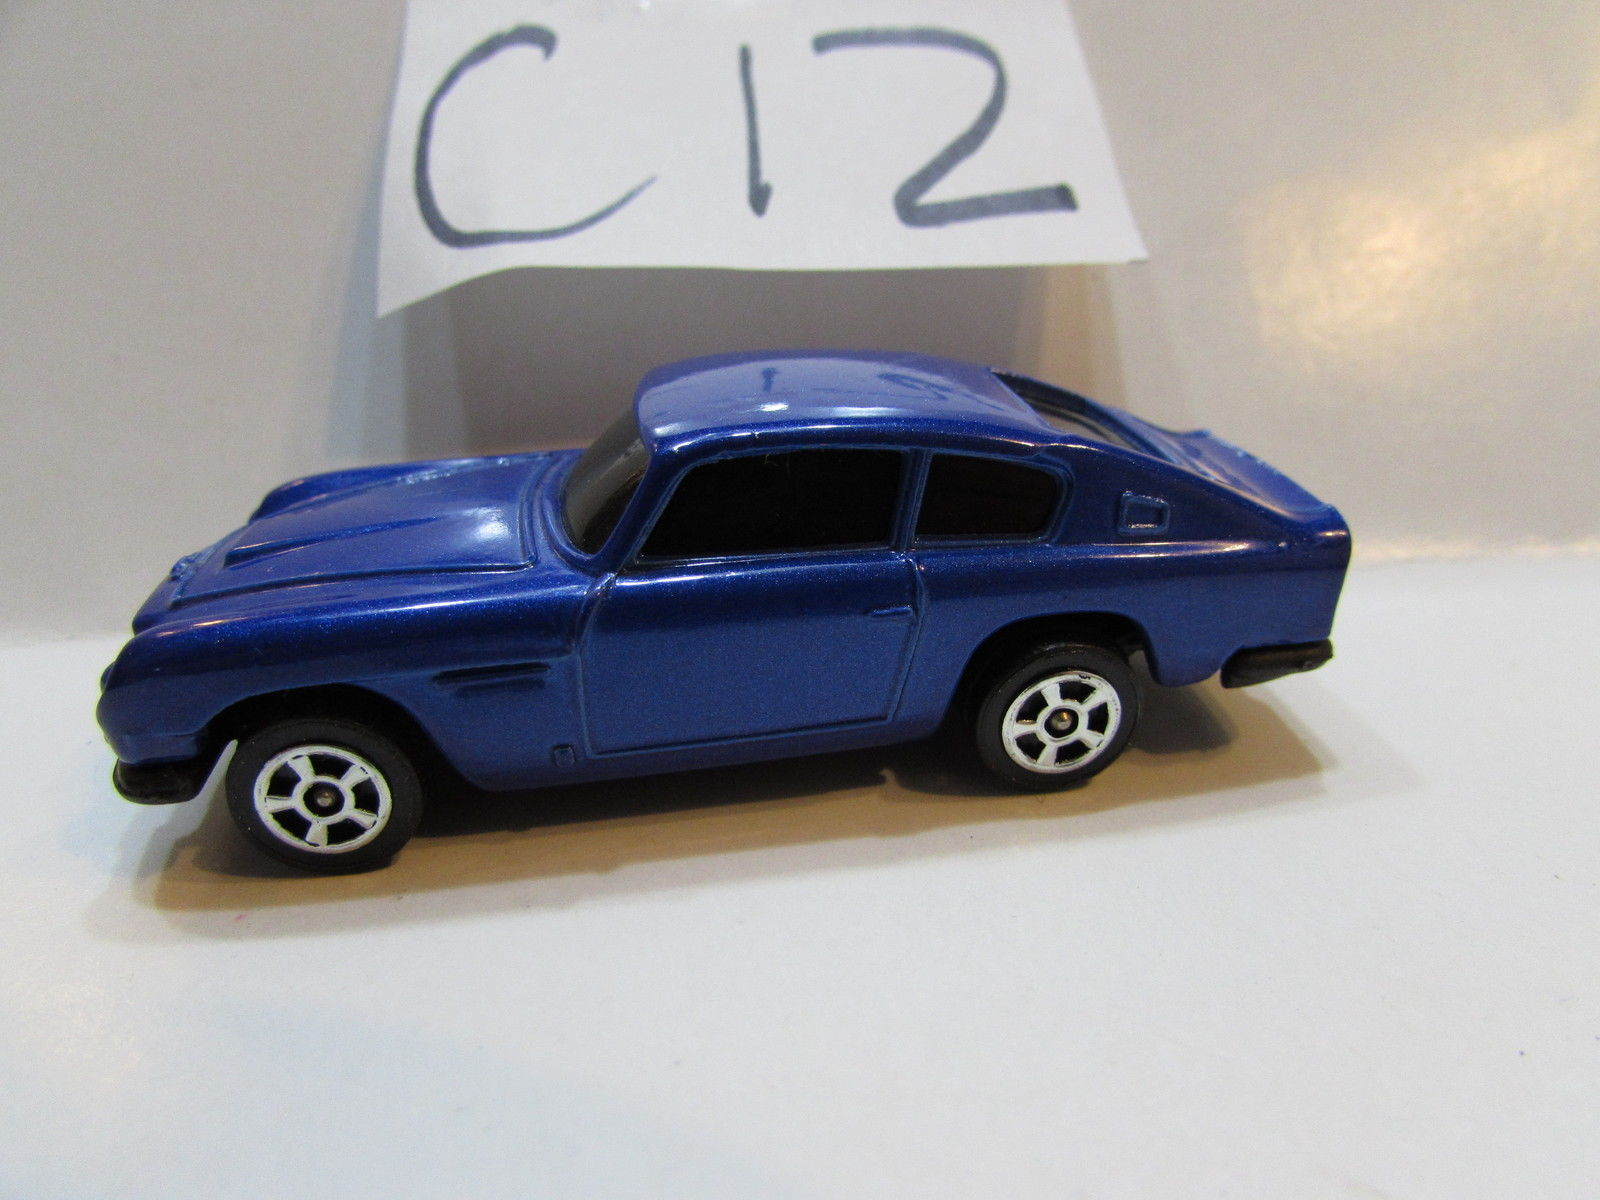 CORGI TOYS ASTON MARTIN DB6 LOOSE MADE IN GR. BRITAIN